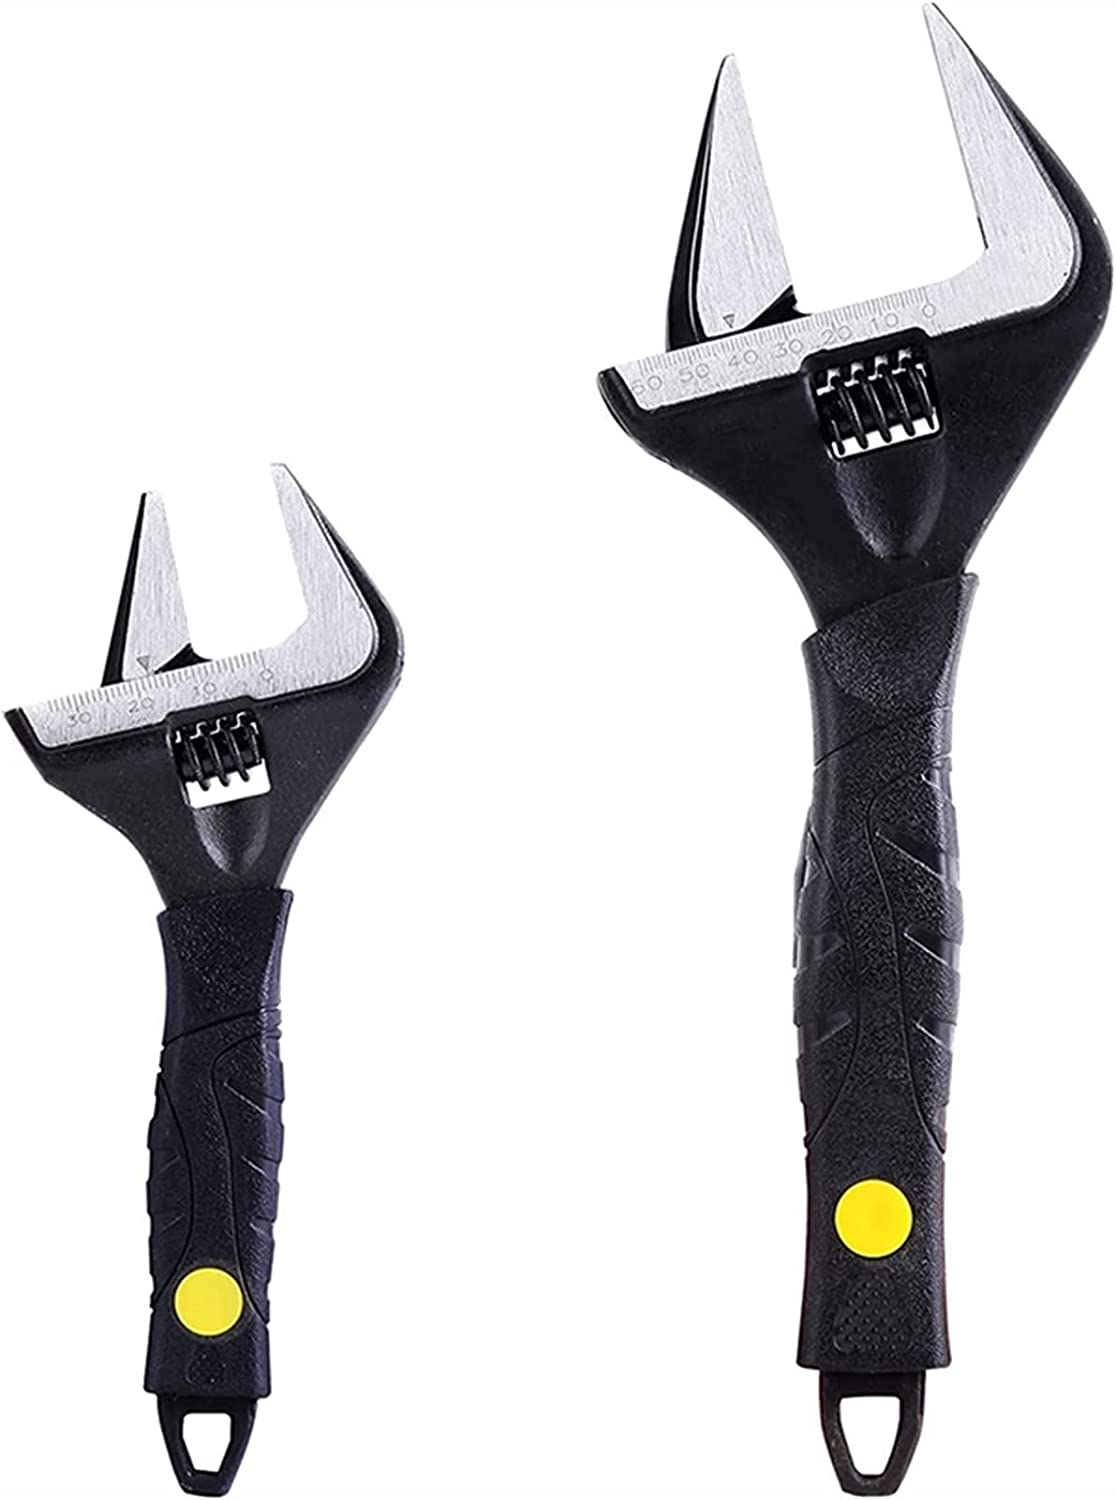 2Pcs 6 12 In Adjustable Wrench Heavy-Du Jaw Deep Opening Year-end gift Popular products Wide